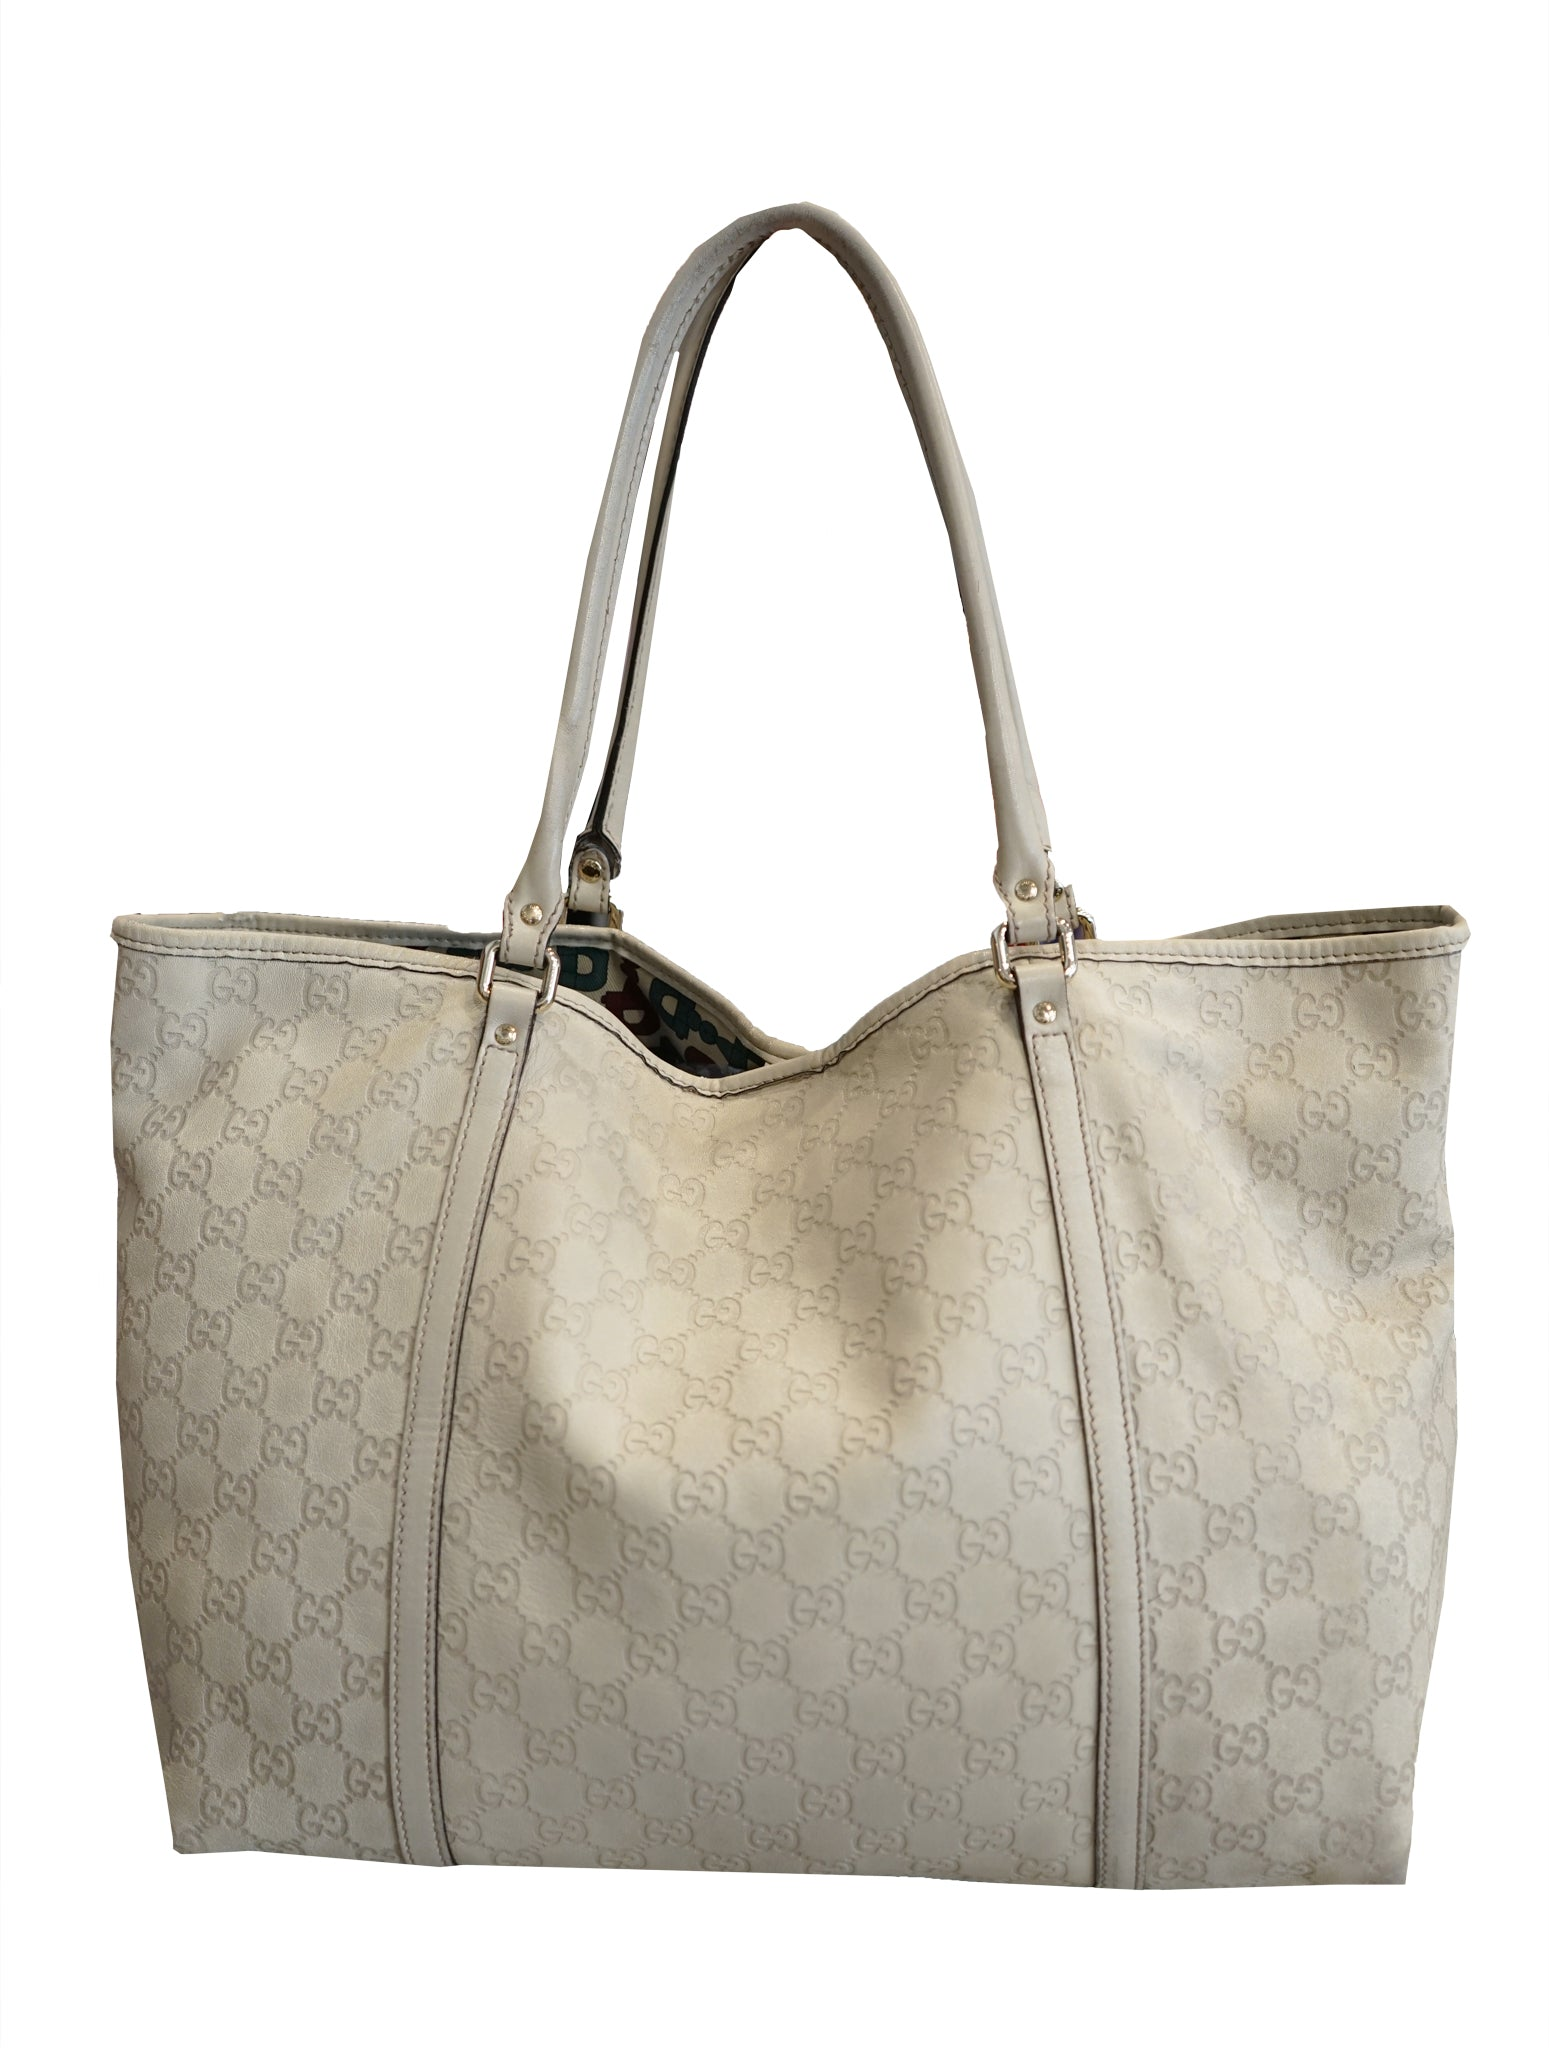 680fcc05953c GUCCISSIMA LEATHER TOTE BAG – Kidsstyleforless